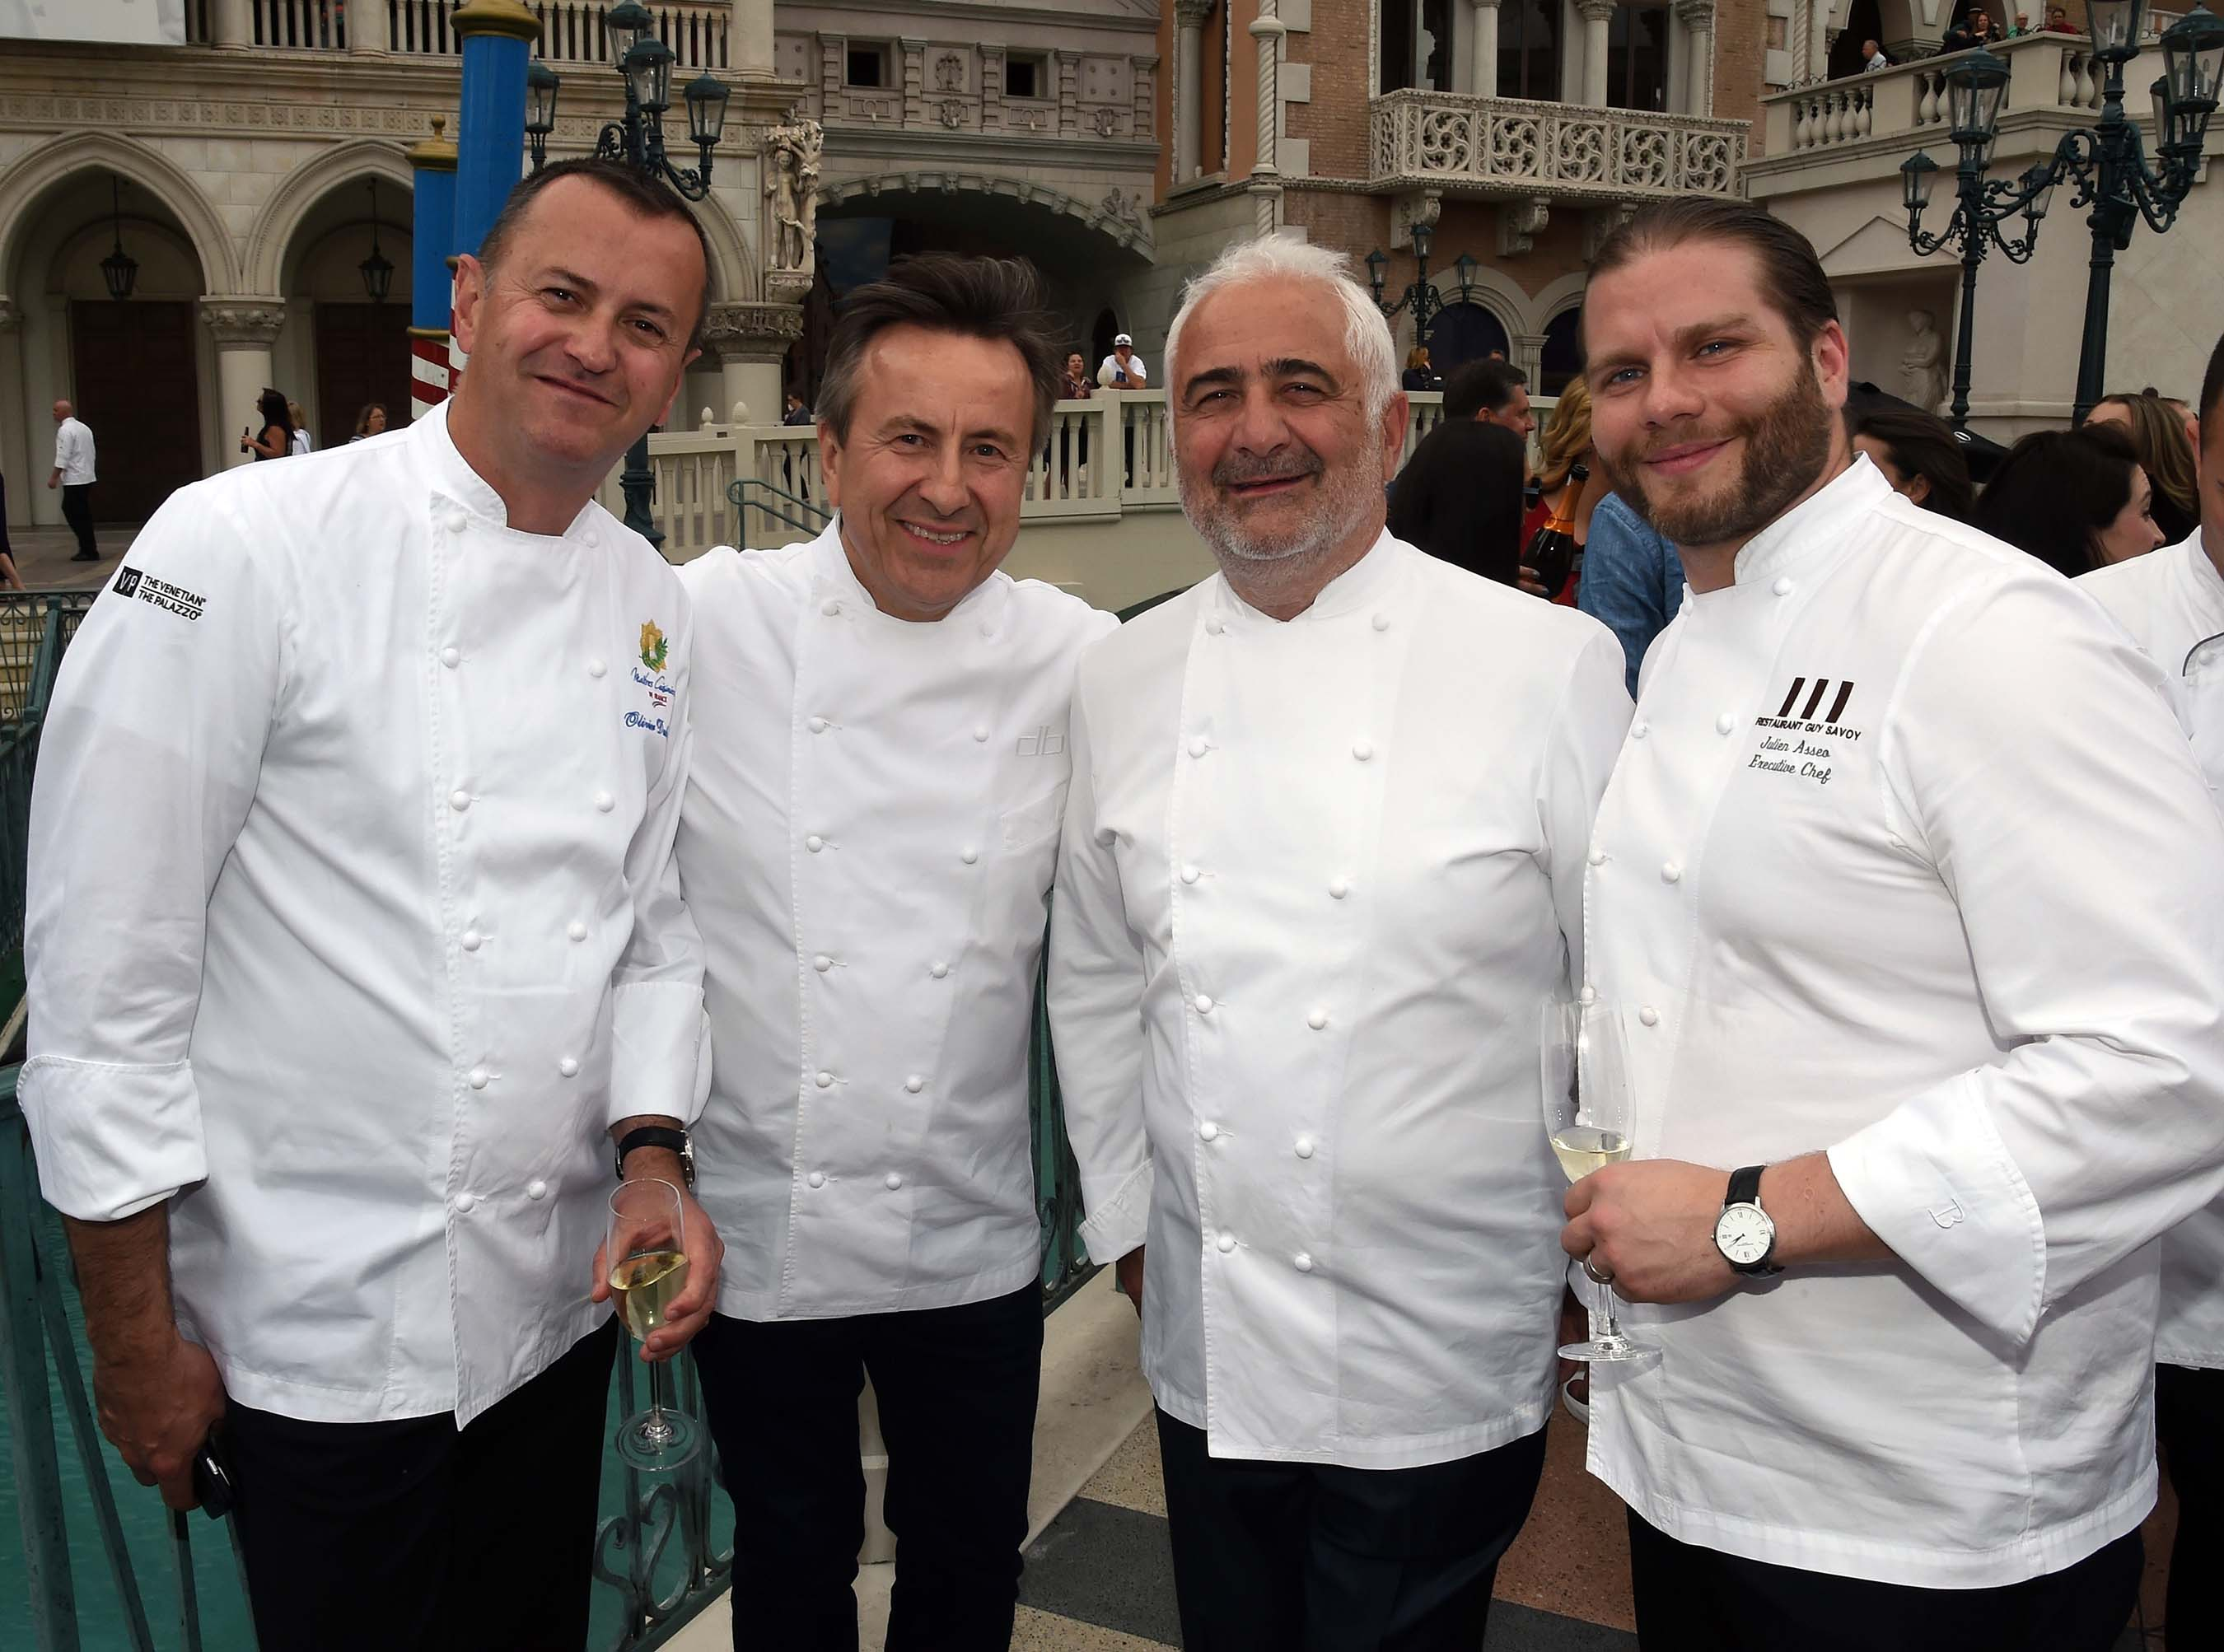 Olivier Dubreuil, Daniel Boulud, Guy Savoy and Julien Asseo during Saber Off at Vegas Uncork'd by Bon Appétit presented by Chase Sapphire Preferred (Ethan Miller/Getty Images for Vegas Uncork'd)